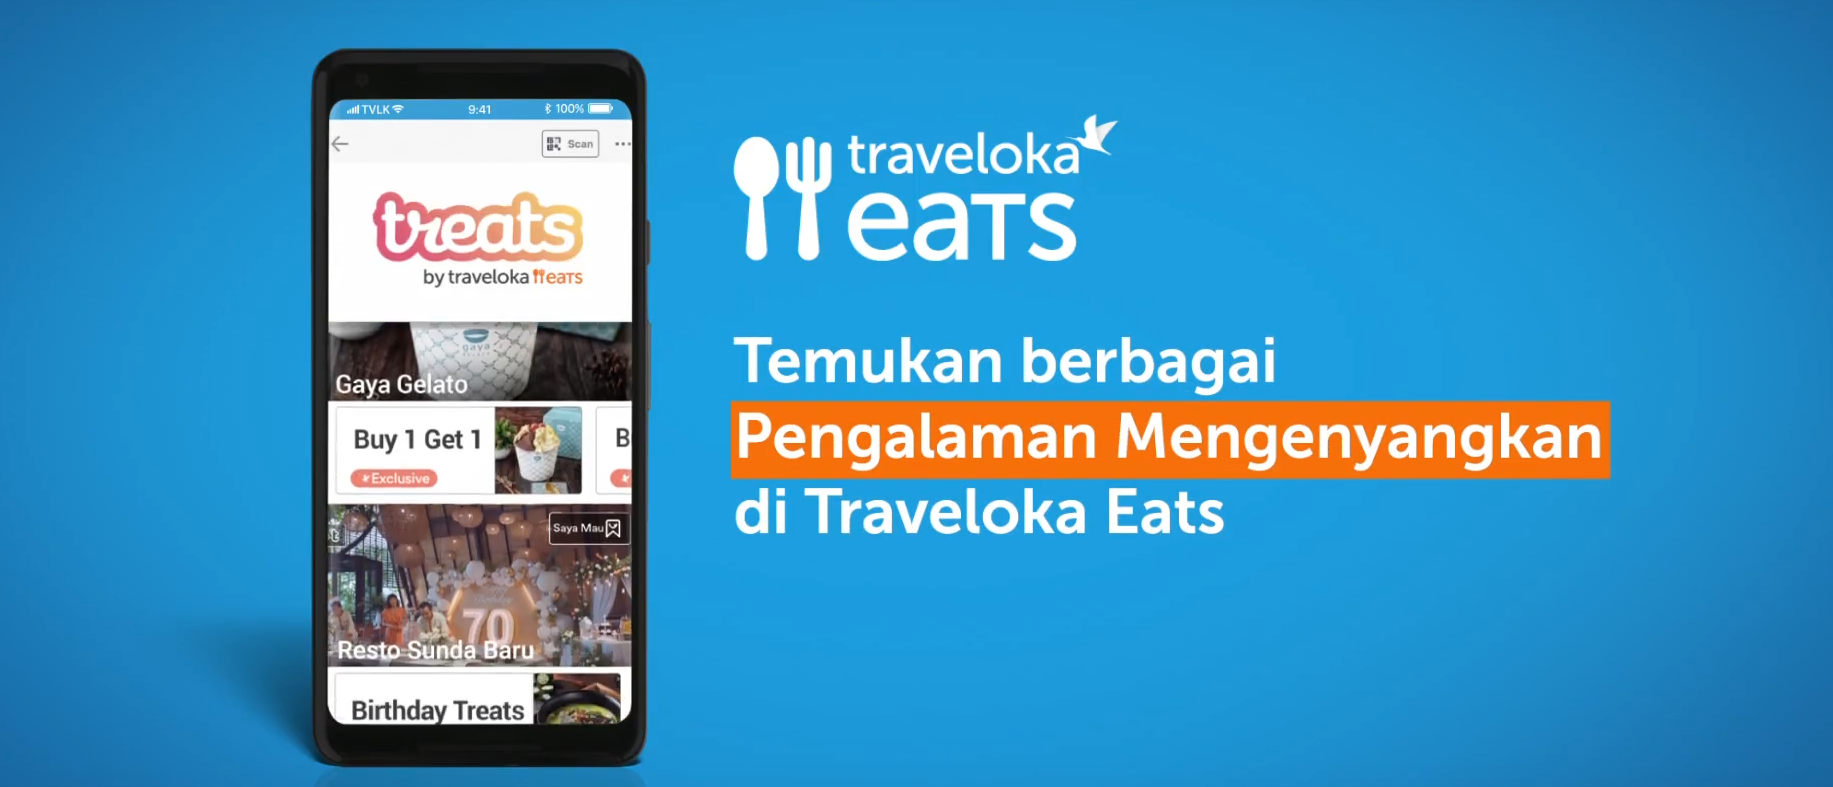 traveloka treats